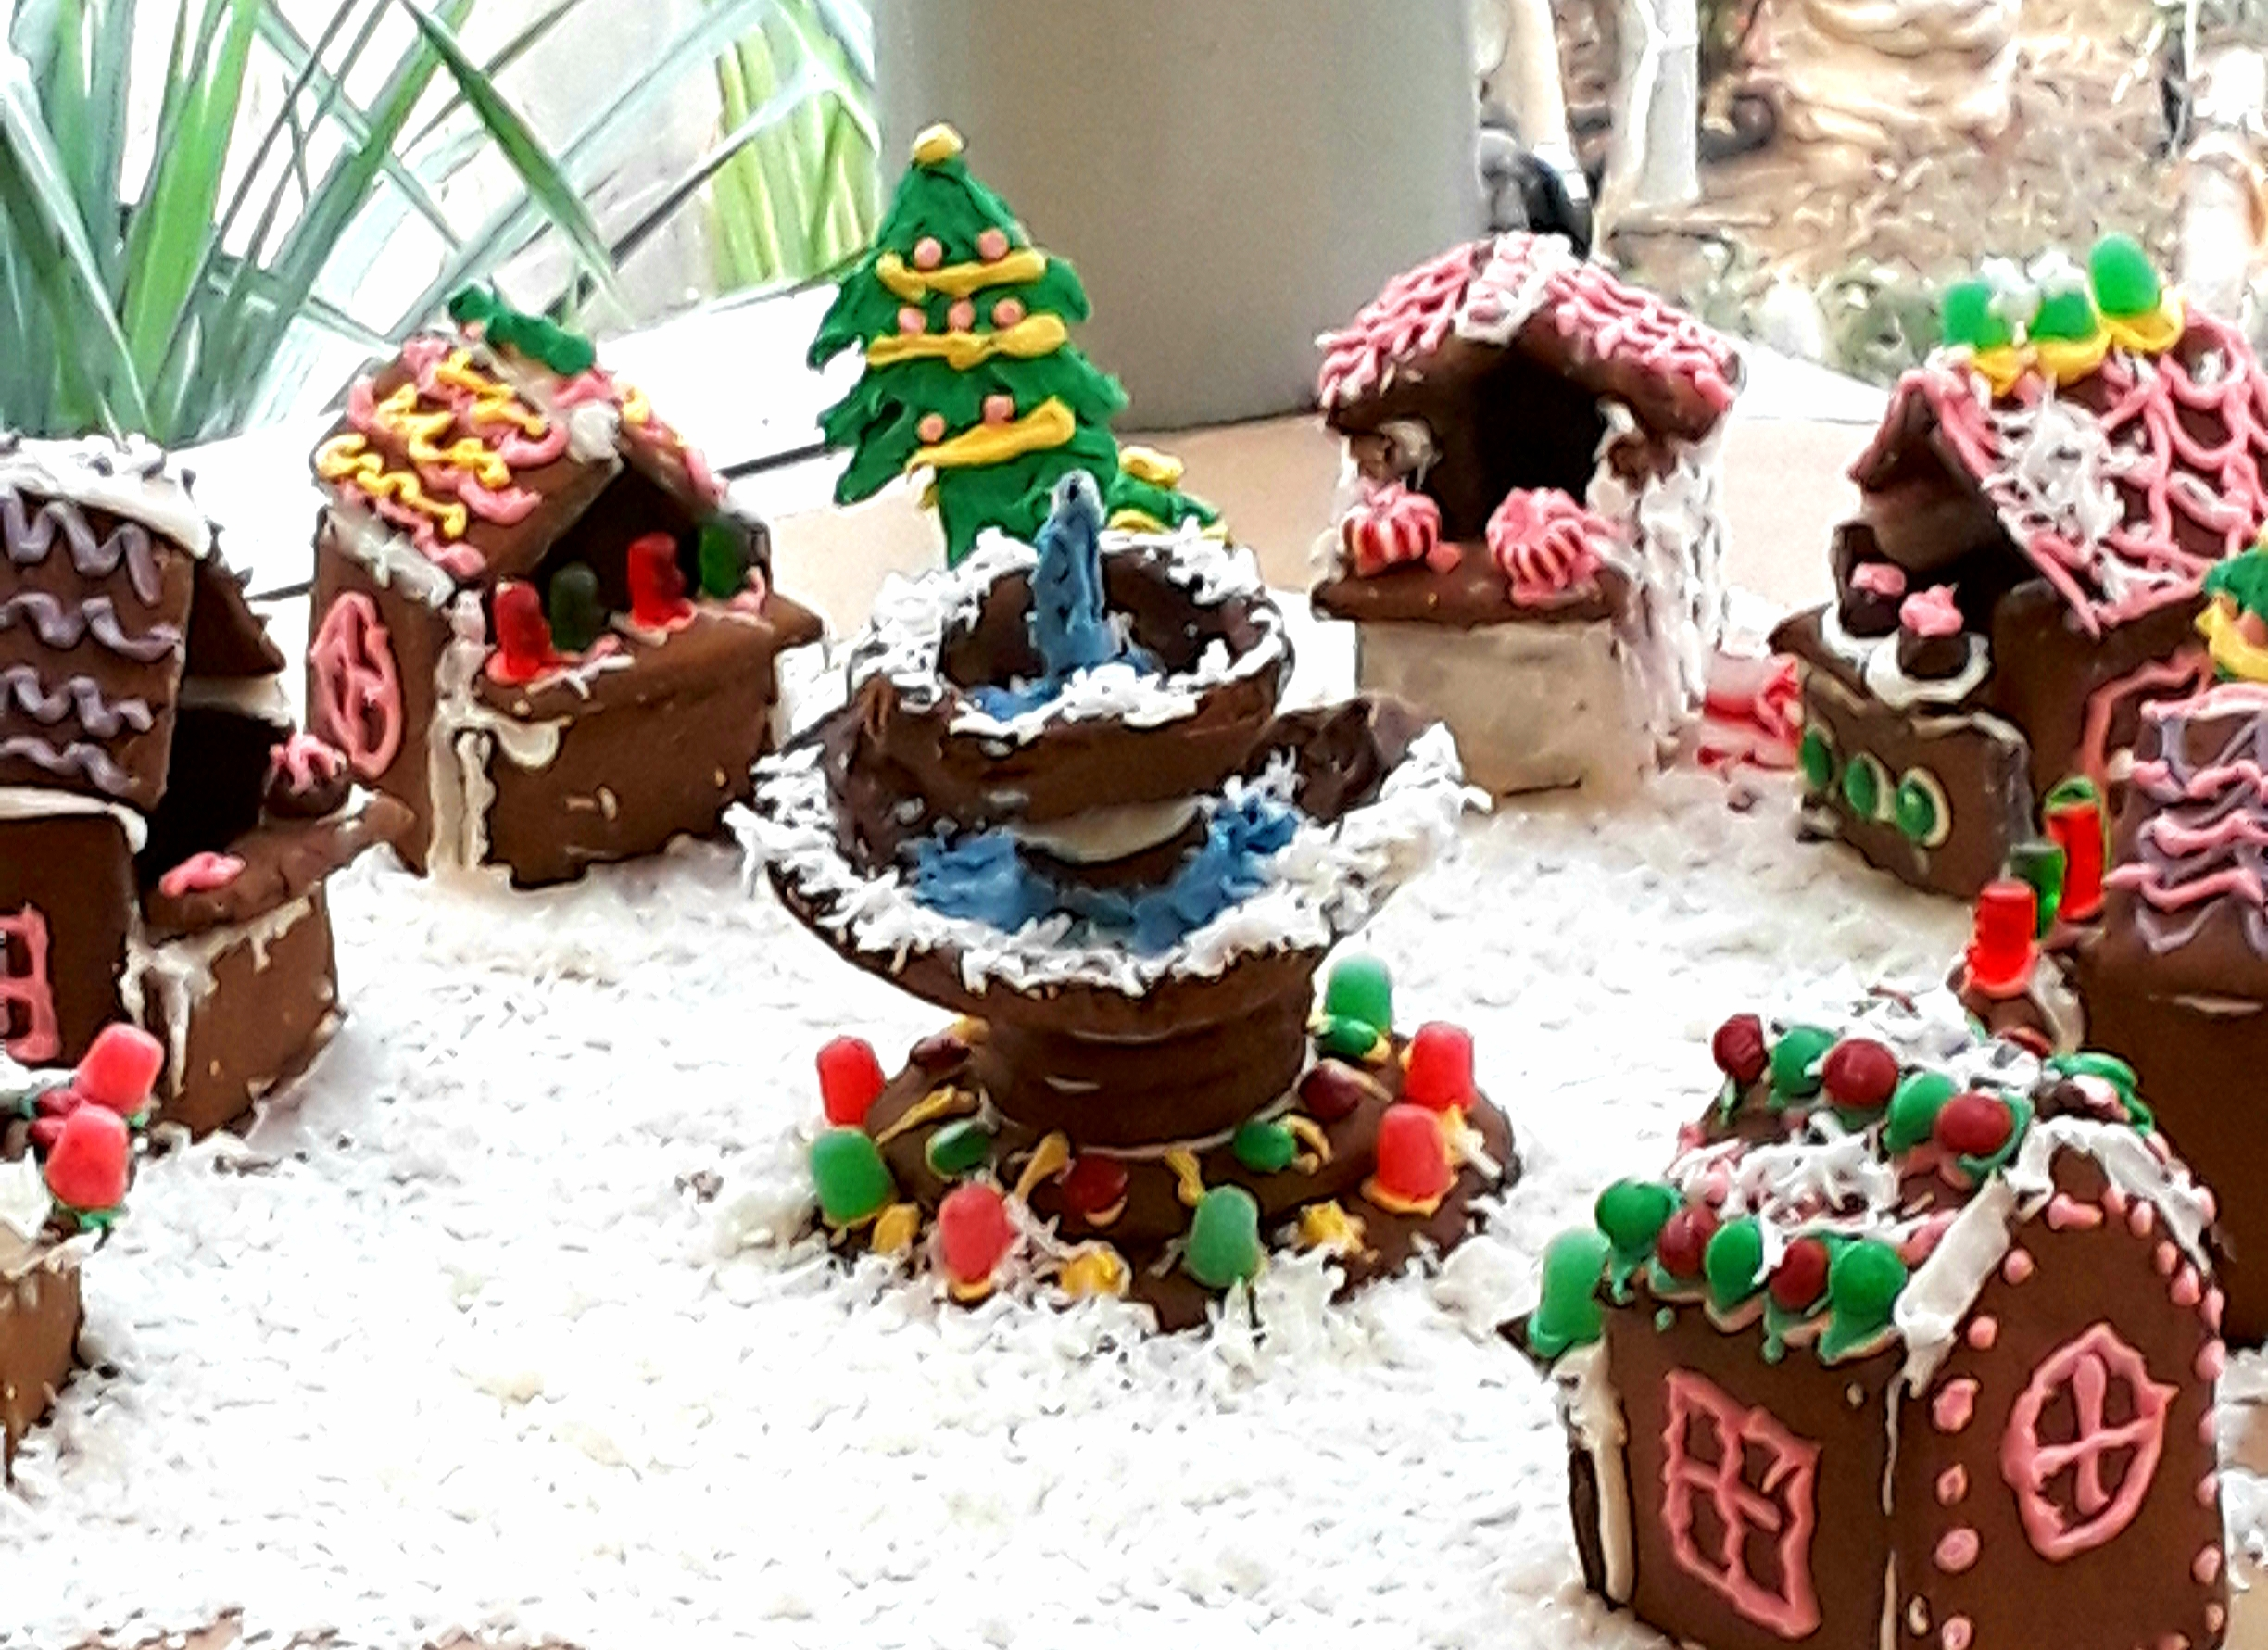 Gingerbread cottages surround a fountain made from cookies, frosting, and gumdrops